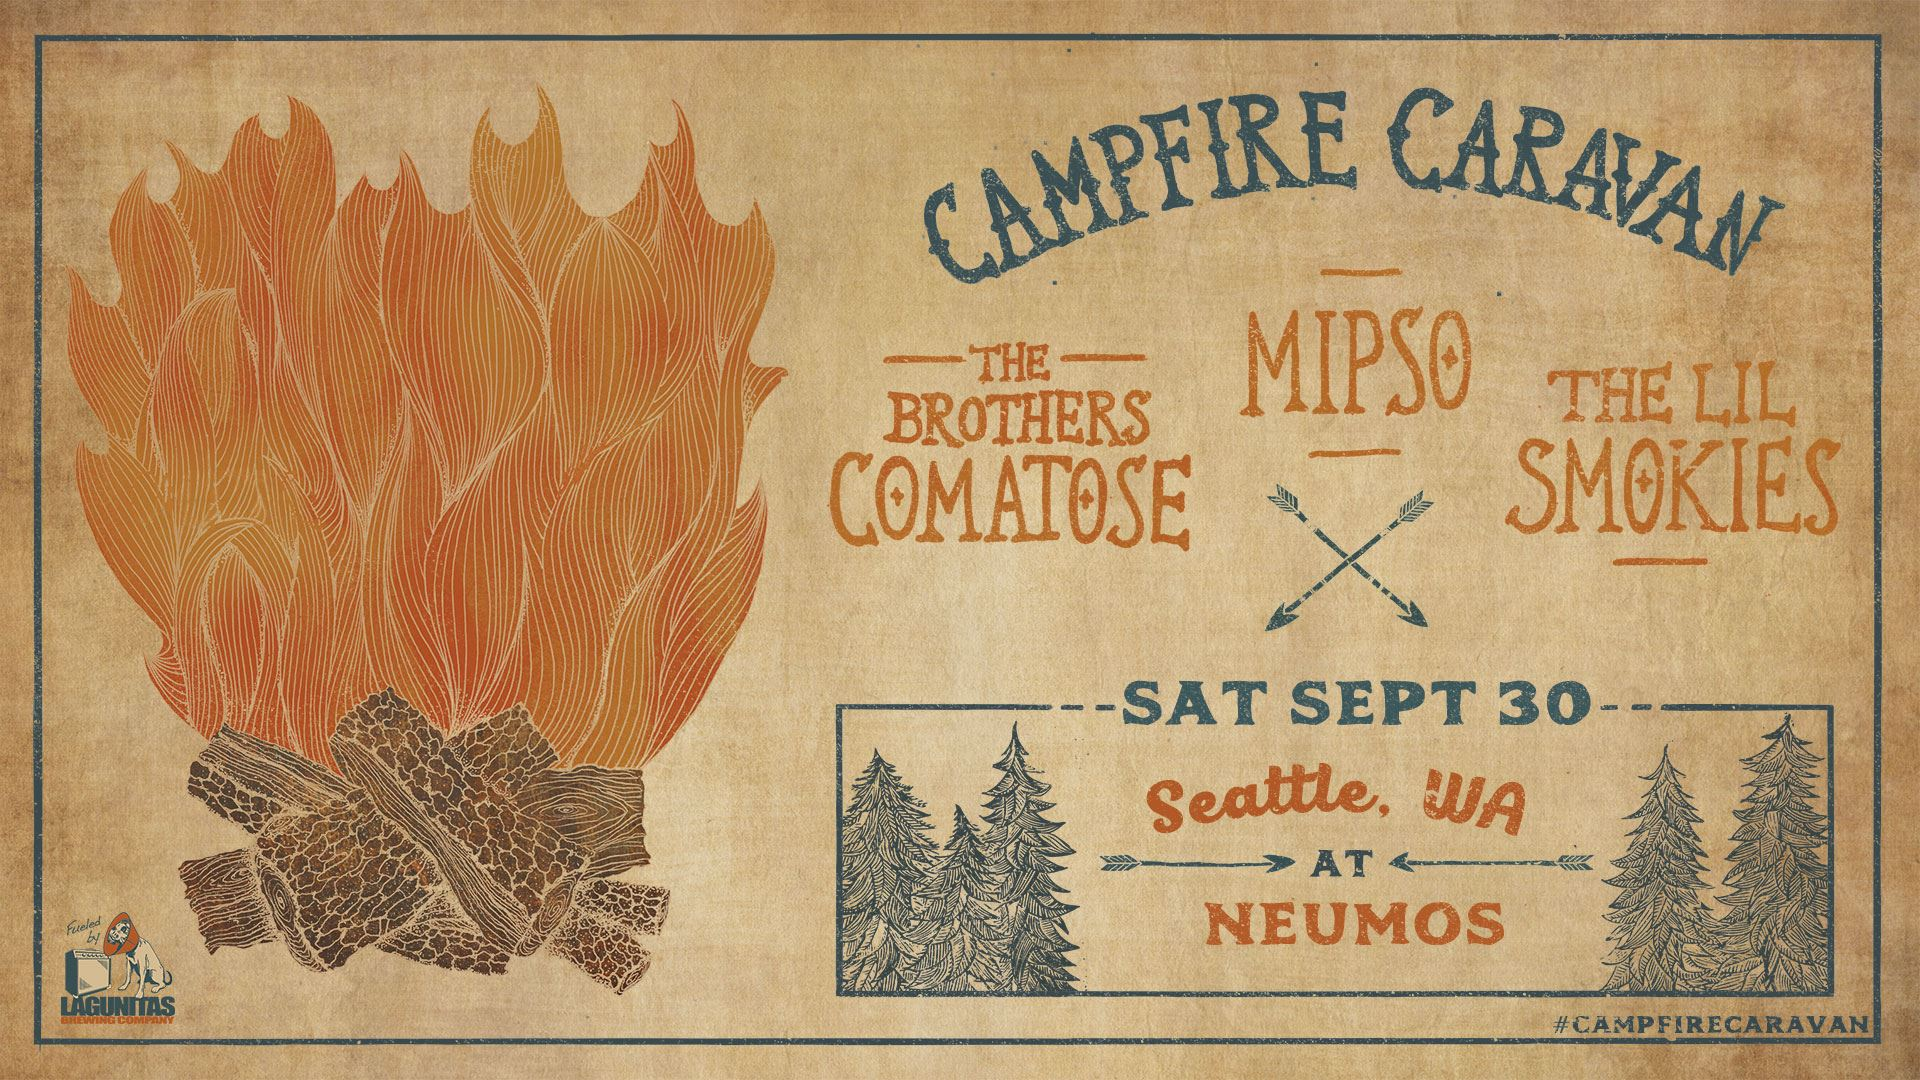 GIVEAWAY - Win tickets to Campfire Caravan at Neumo's (Seattle) 9/30